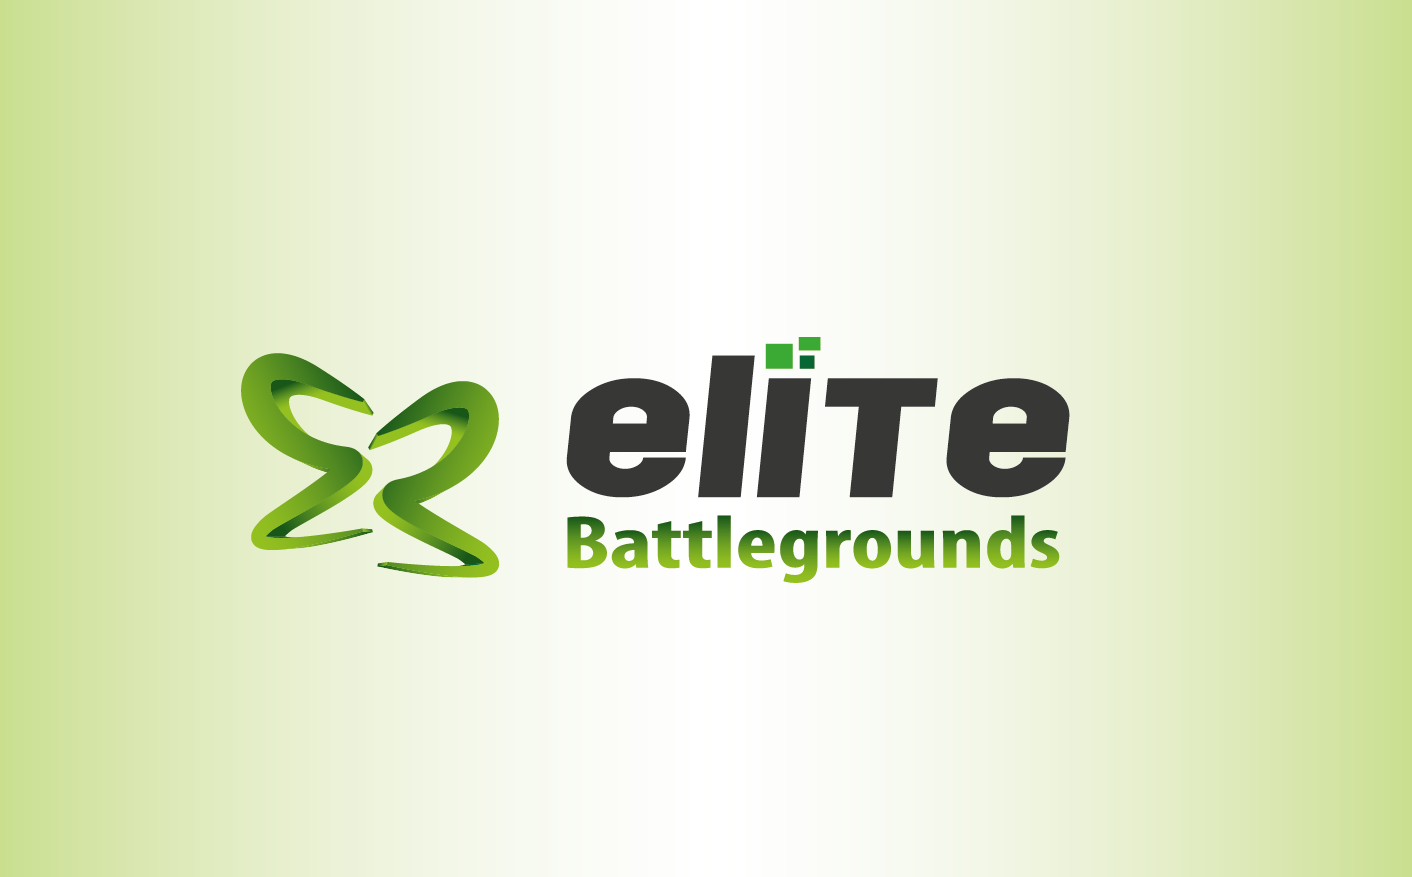 Logo Design by 354studio - Entry No. 45 in the Logo Design Contest Creative Logo Design for Elite Battlegrounds.